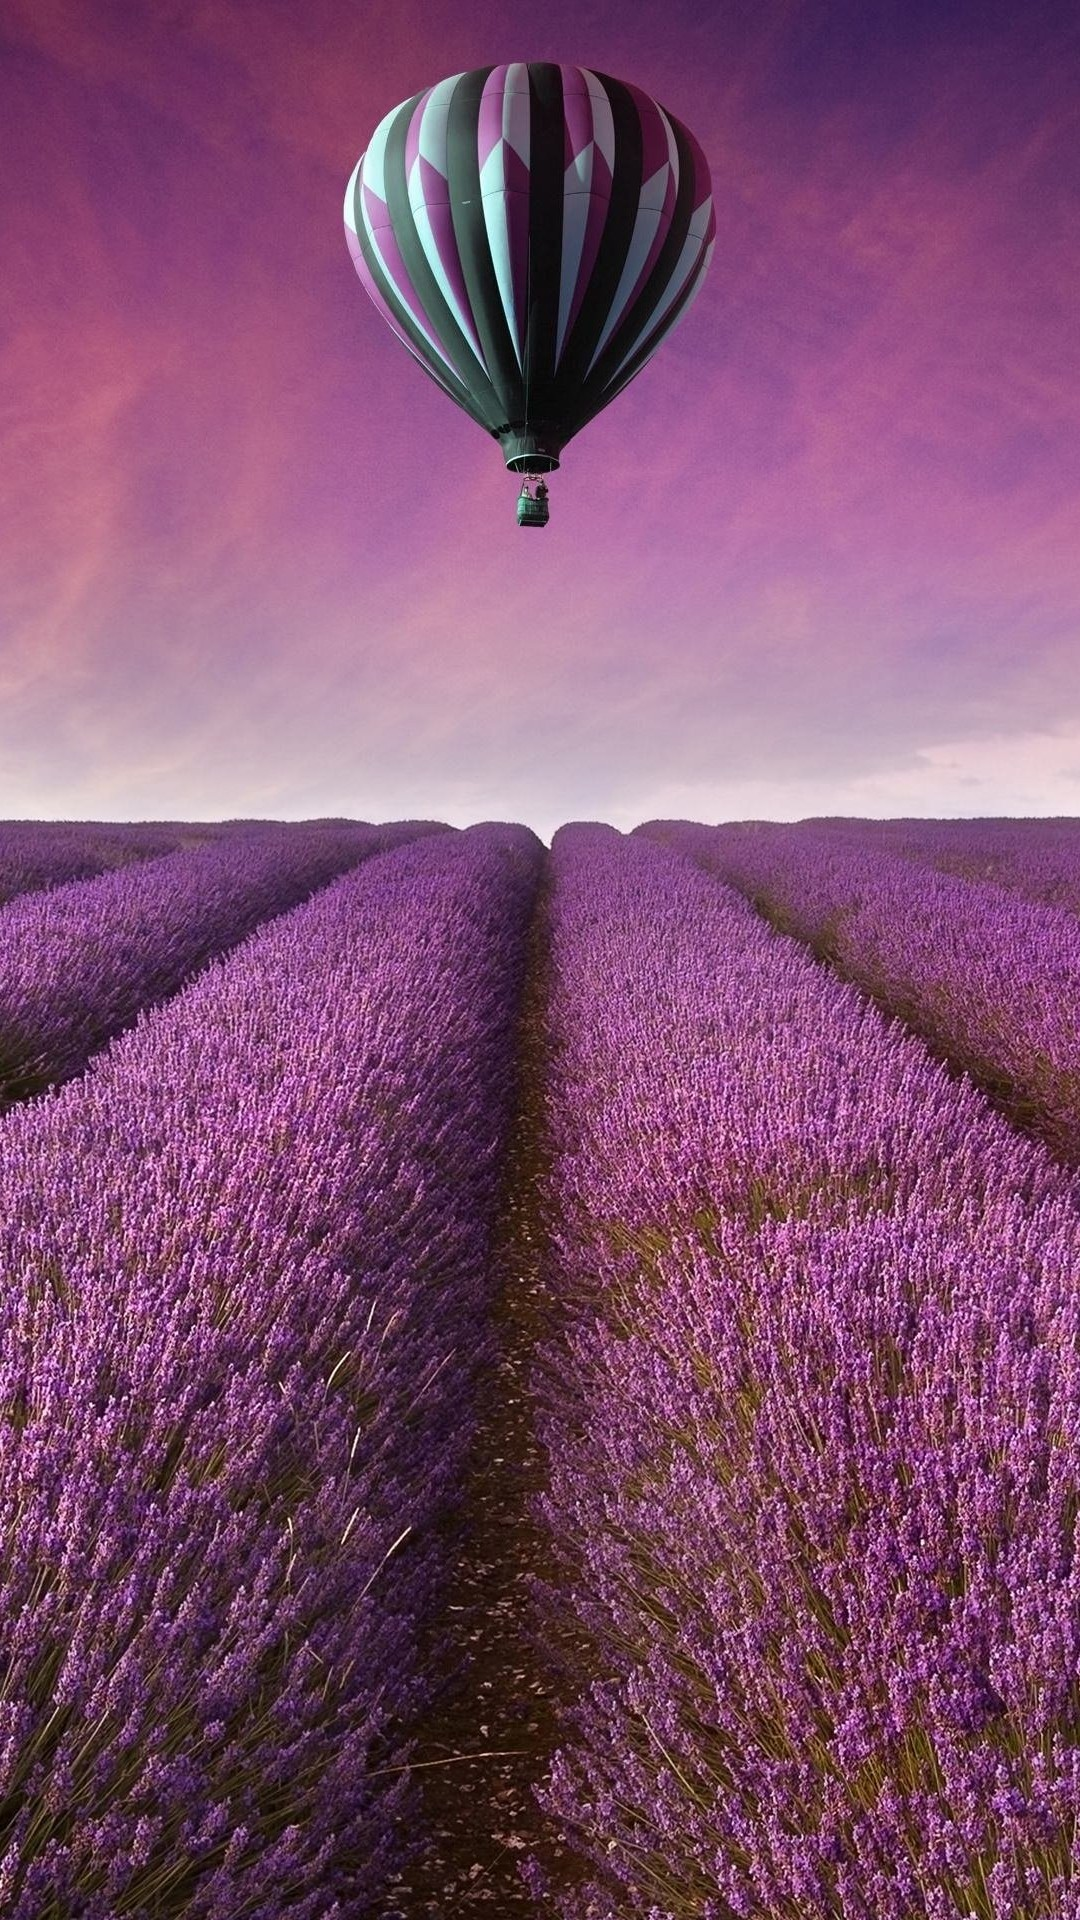 Hot Air Balloon Over Lavender Field Wallpaper for SAMSUNG Galaxy S5